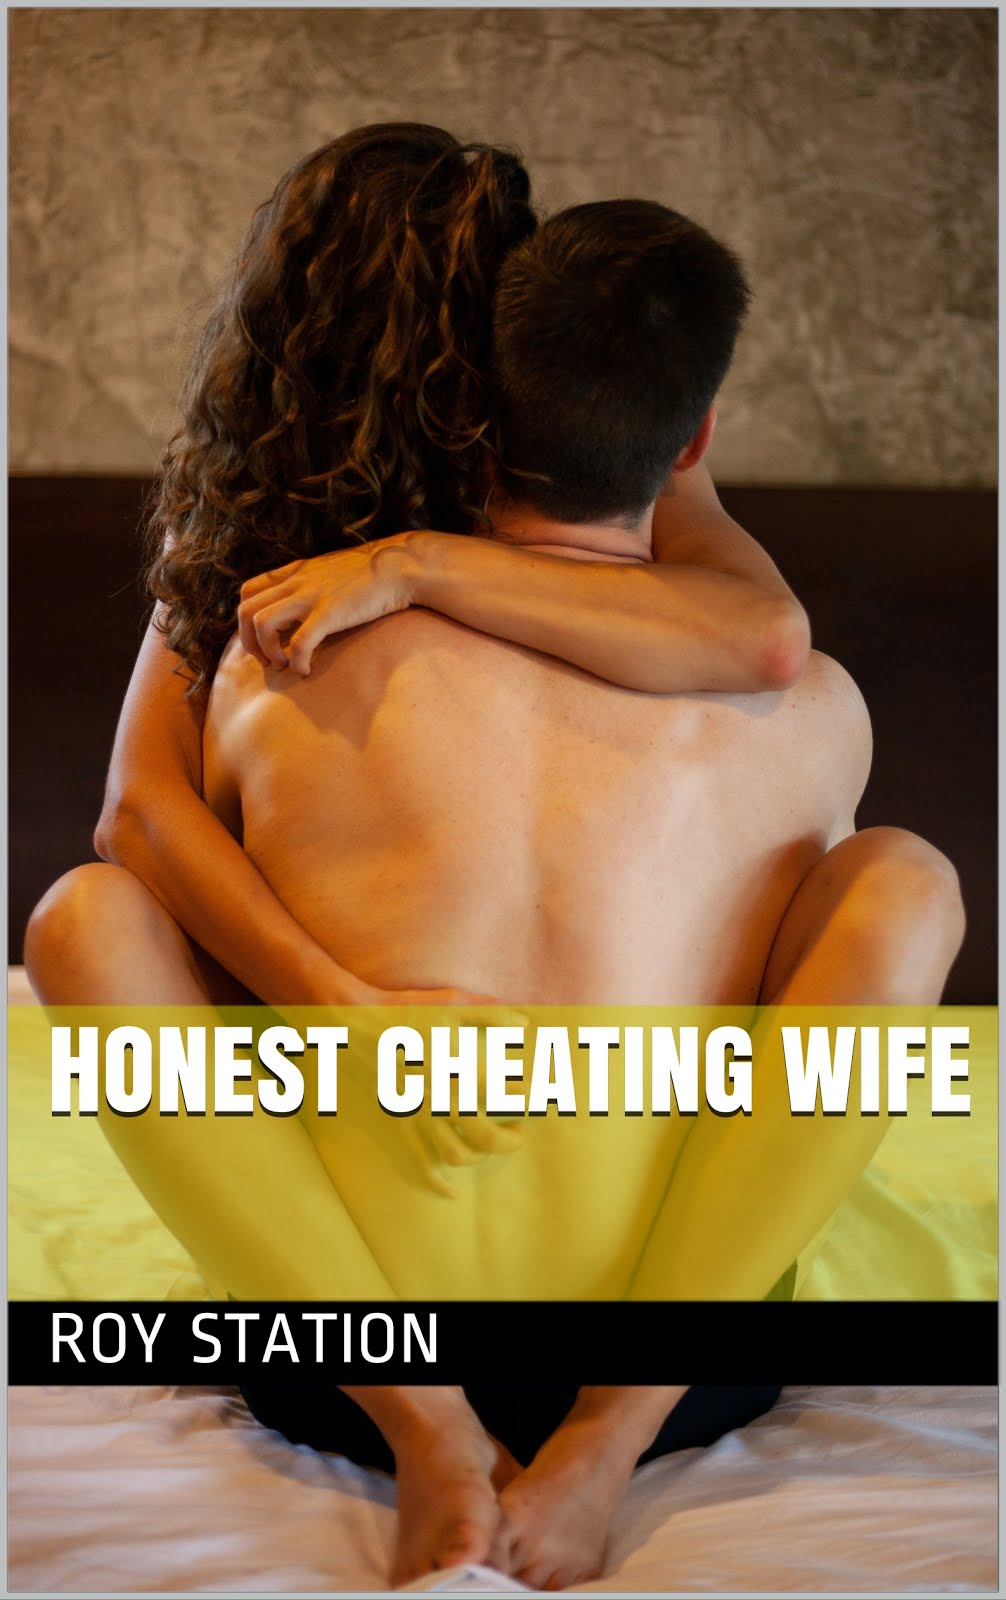 My Honest Cheating Wife